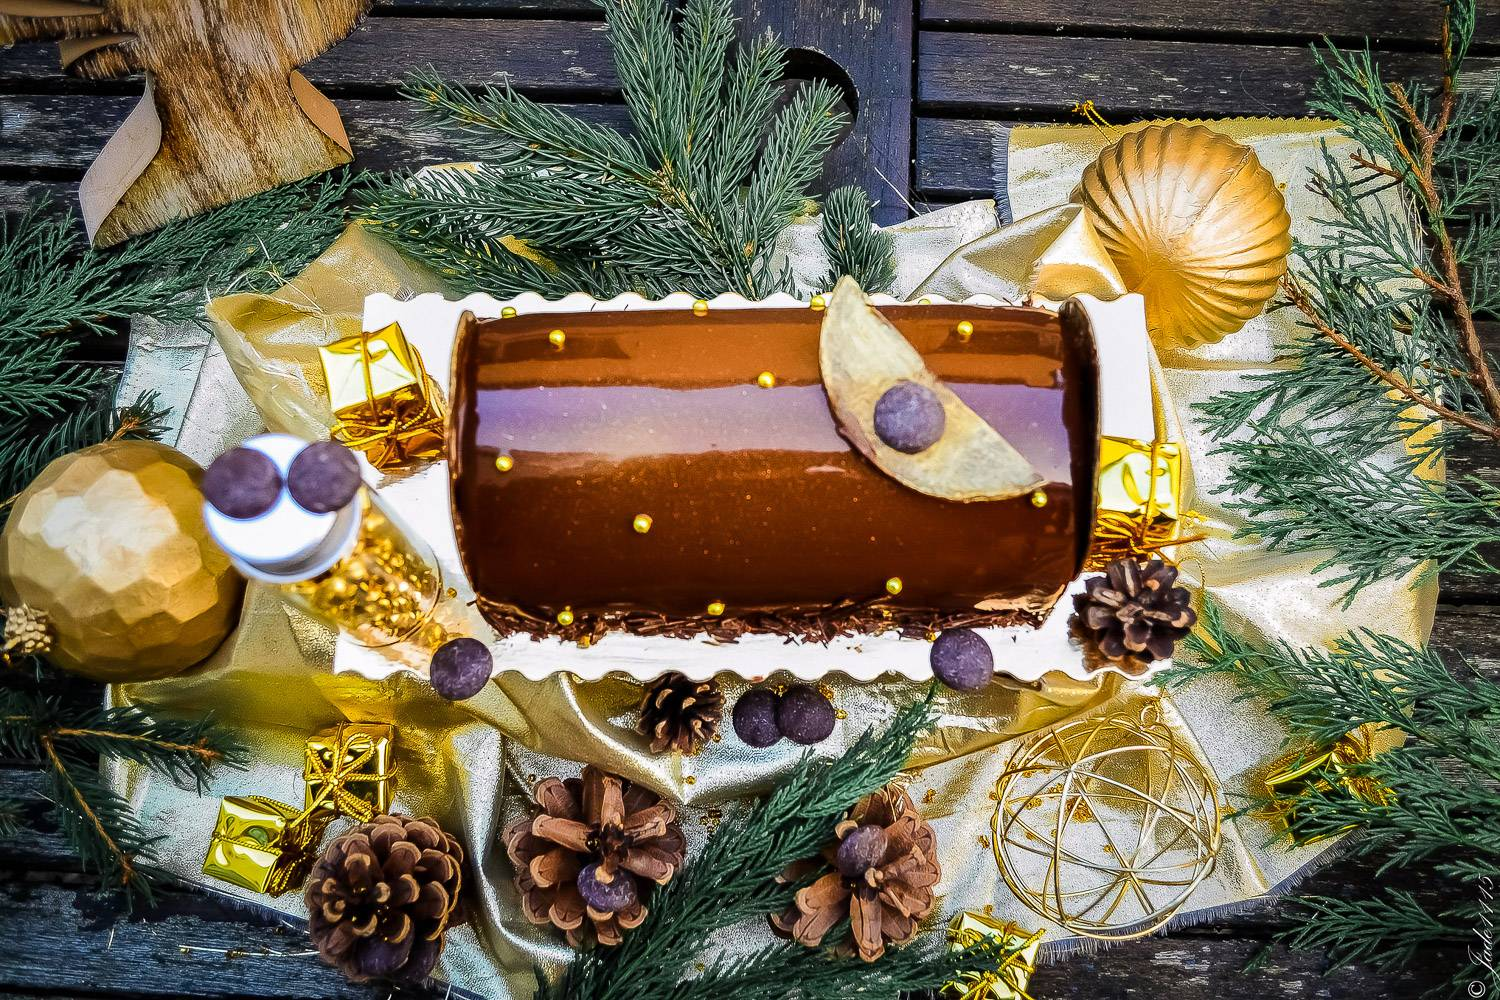 Image of a chocolate Bûche de Noel surrounded by pine cones, leaves and gold Christmas decorations.